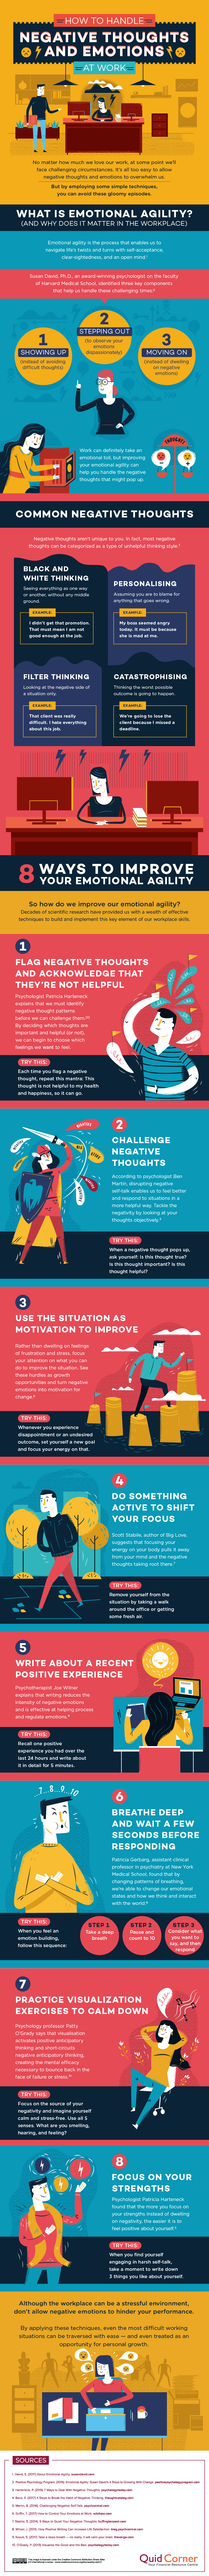 Design_How-to-Handle-Negative-Thoughts-and-Emotions-at-Work  How to Handle Negative Emotions at Work [Infographic] Design How to Handle Negative Thoughts and Emotions at Work